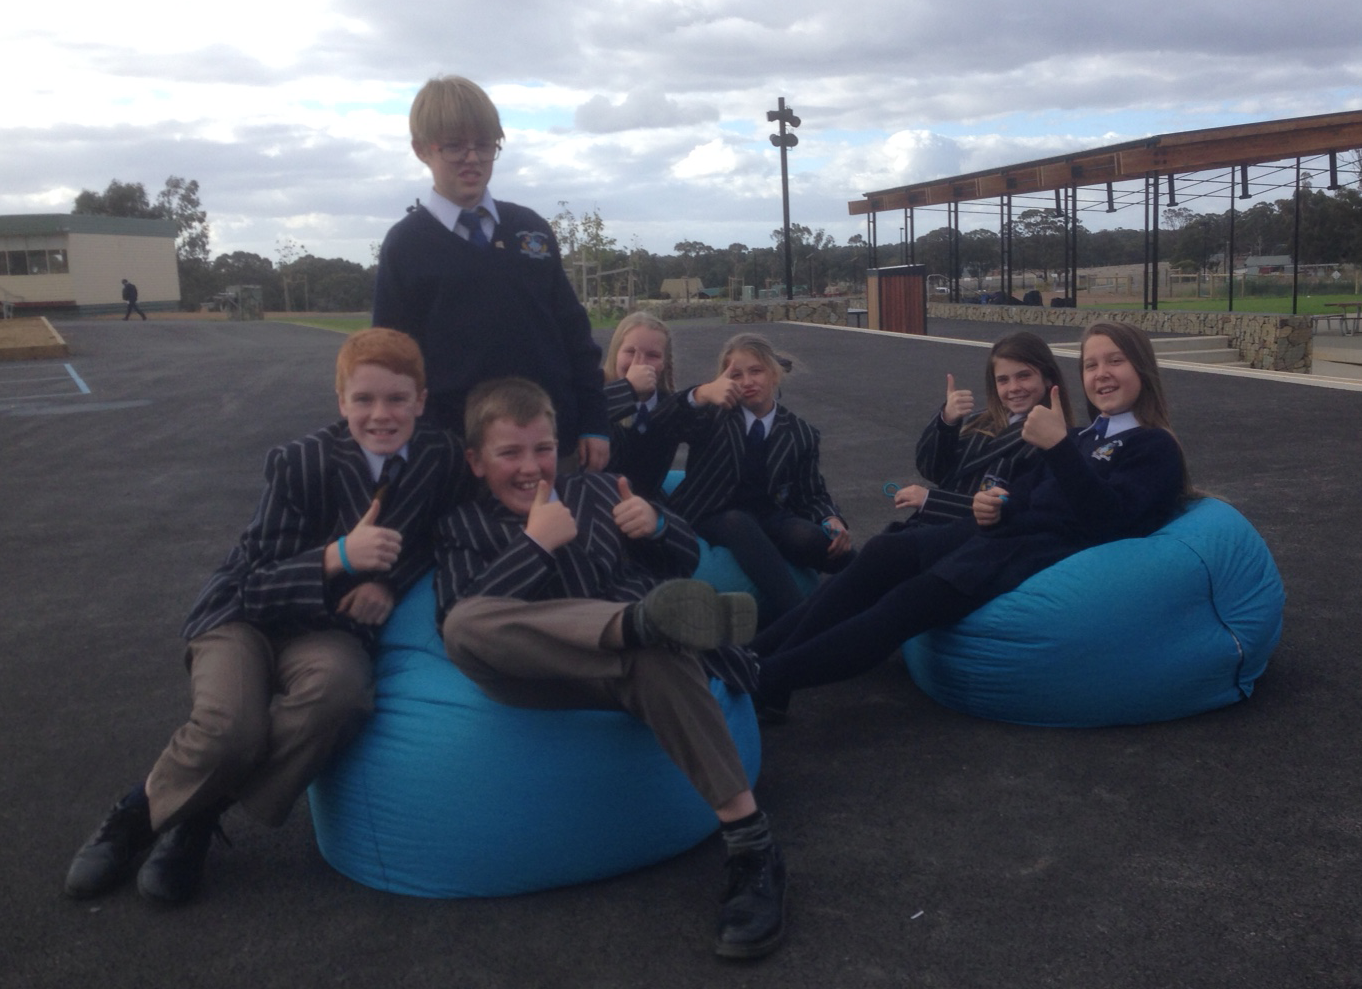 Thumbs up for the blue beanbags at Marist College Bendigo!